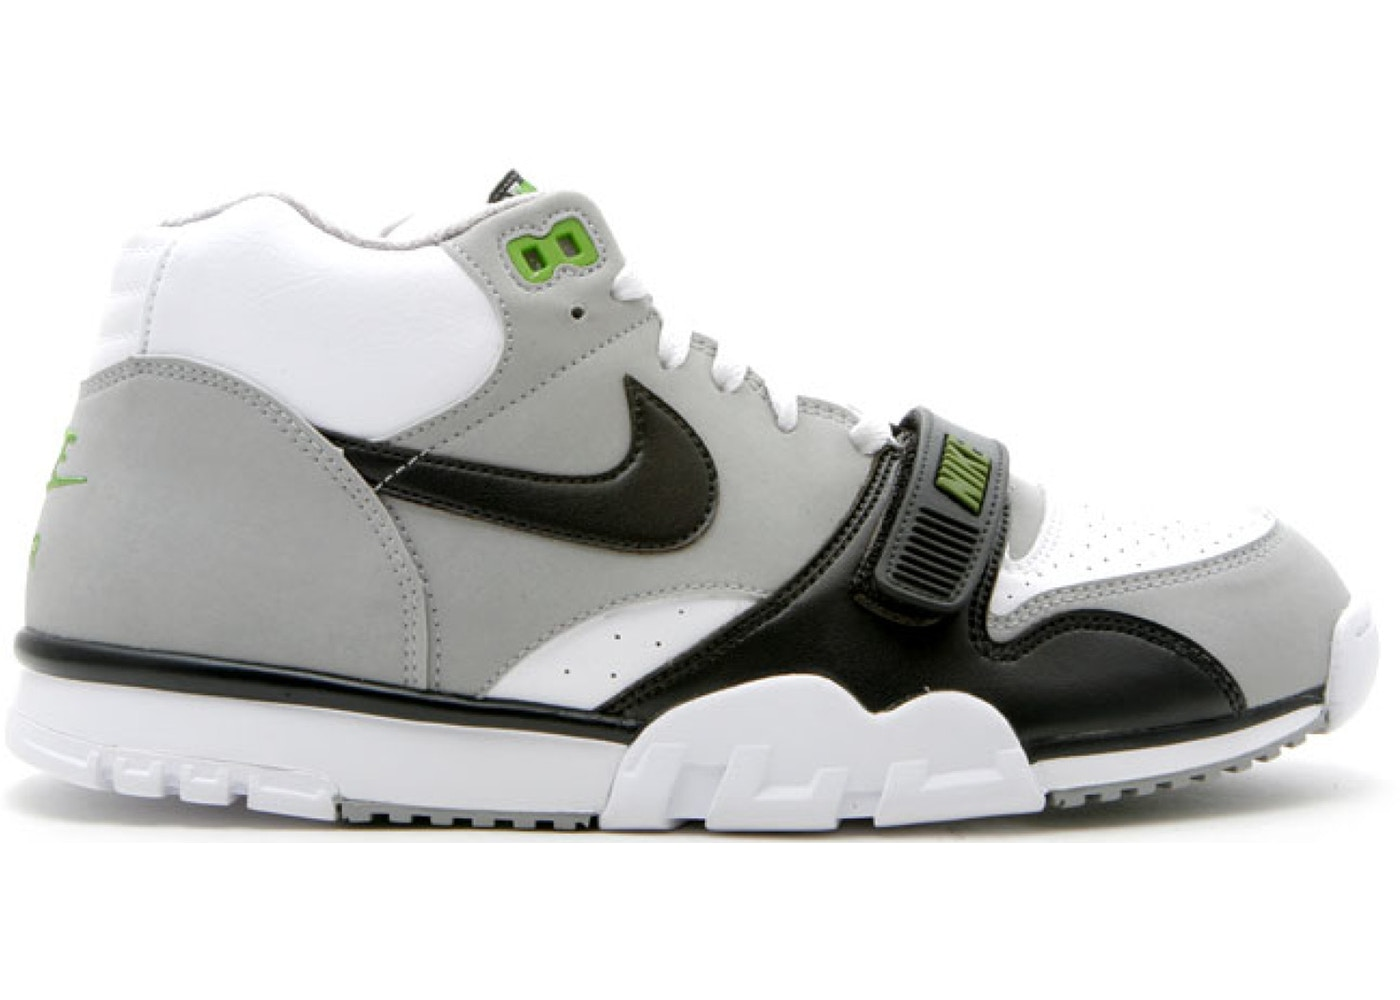 new arrival e7b9a 04968 Air Trainer 1 Mid Chlorophyll (2008) - 317553-101